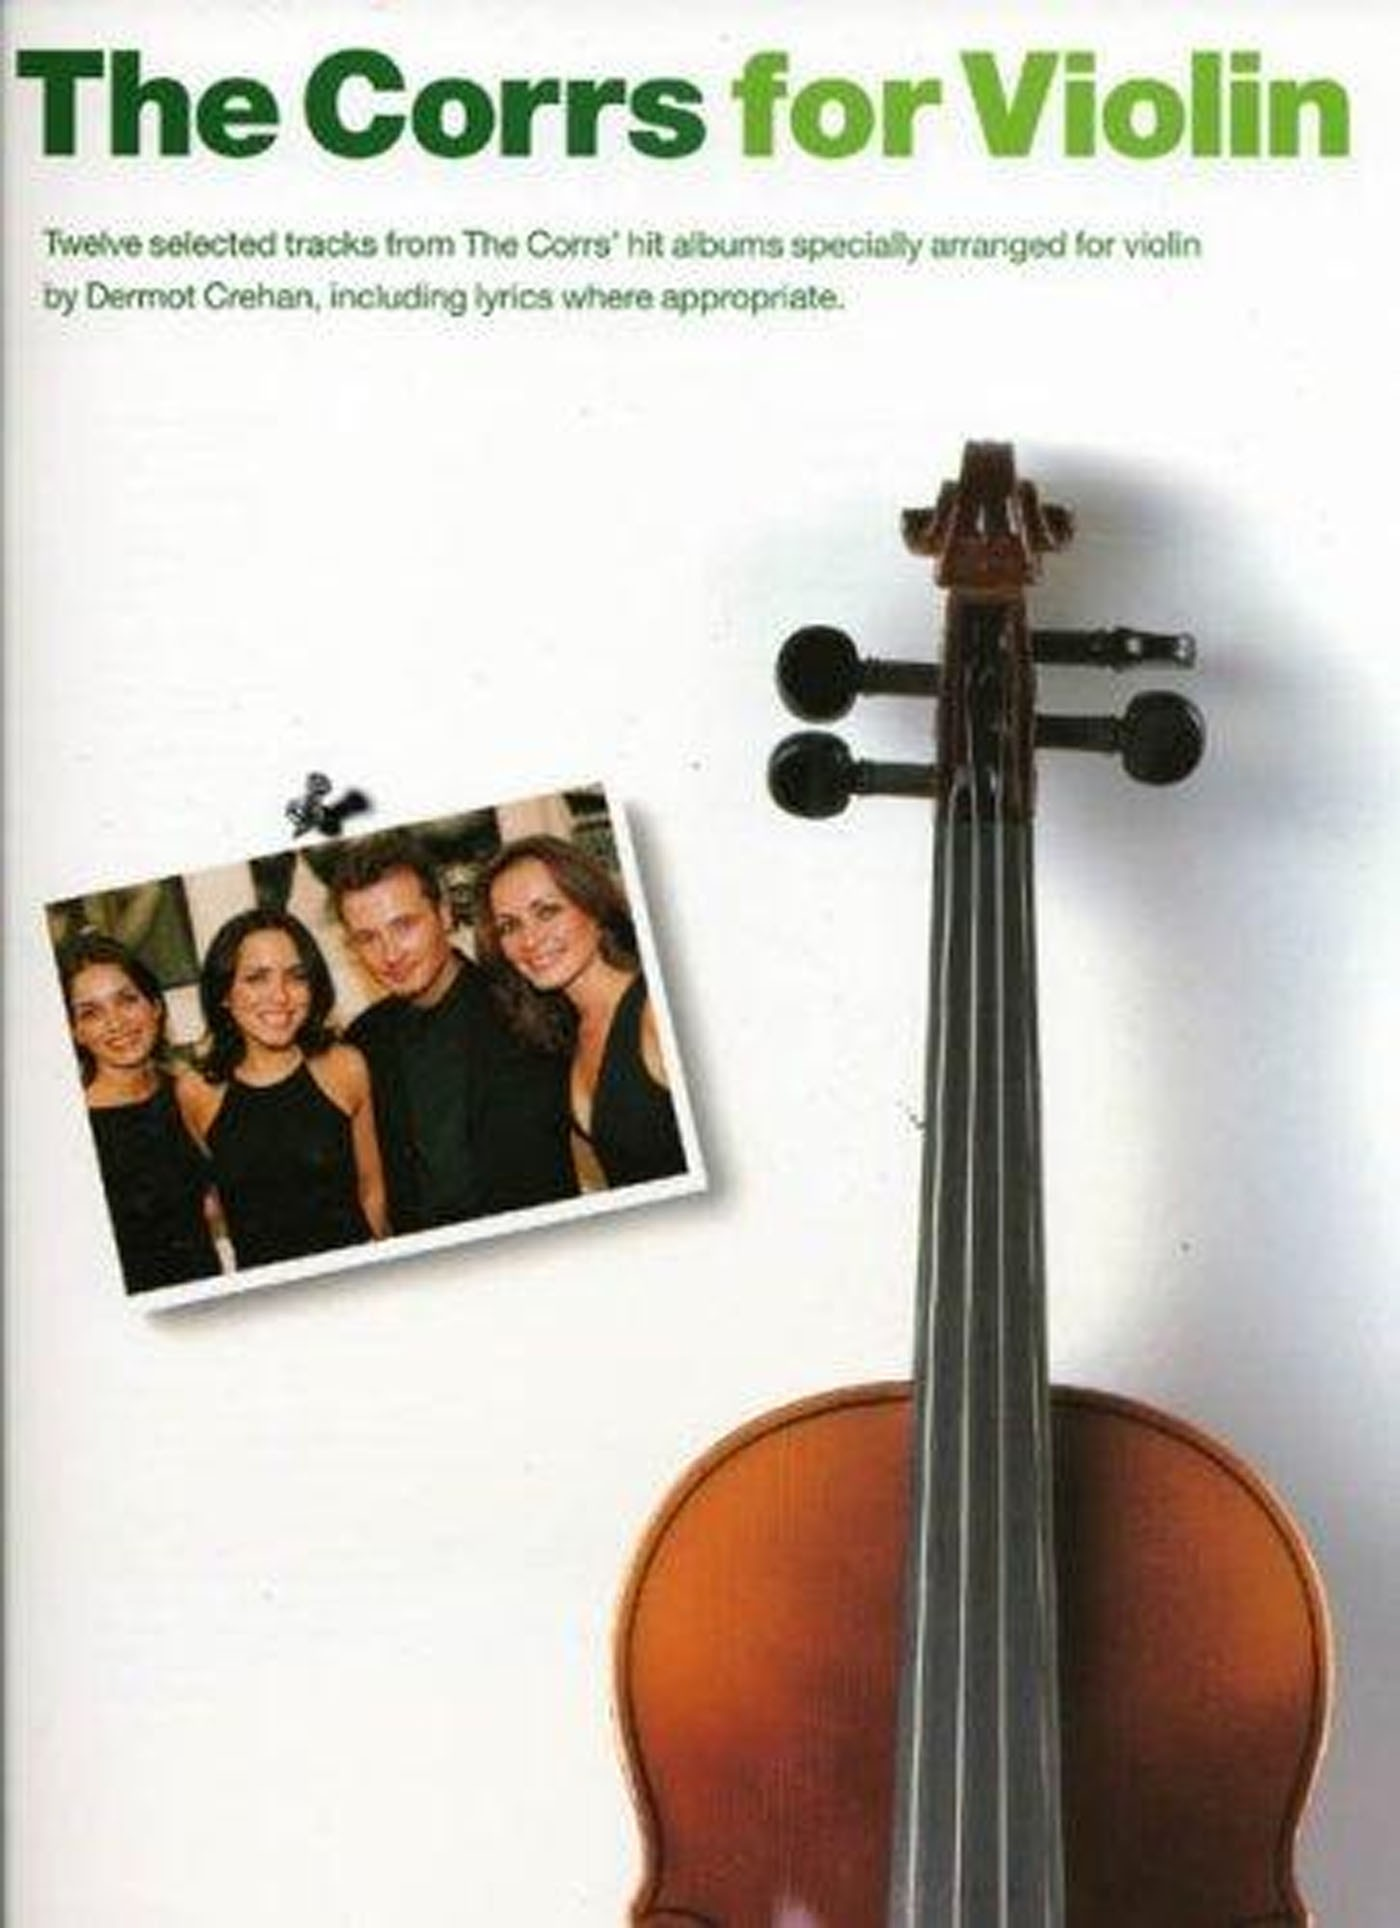 The Corrs For Violin Book 12 Tracks Songs Chords Some Lyrics S137